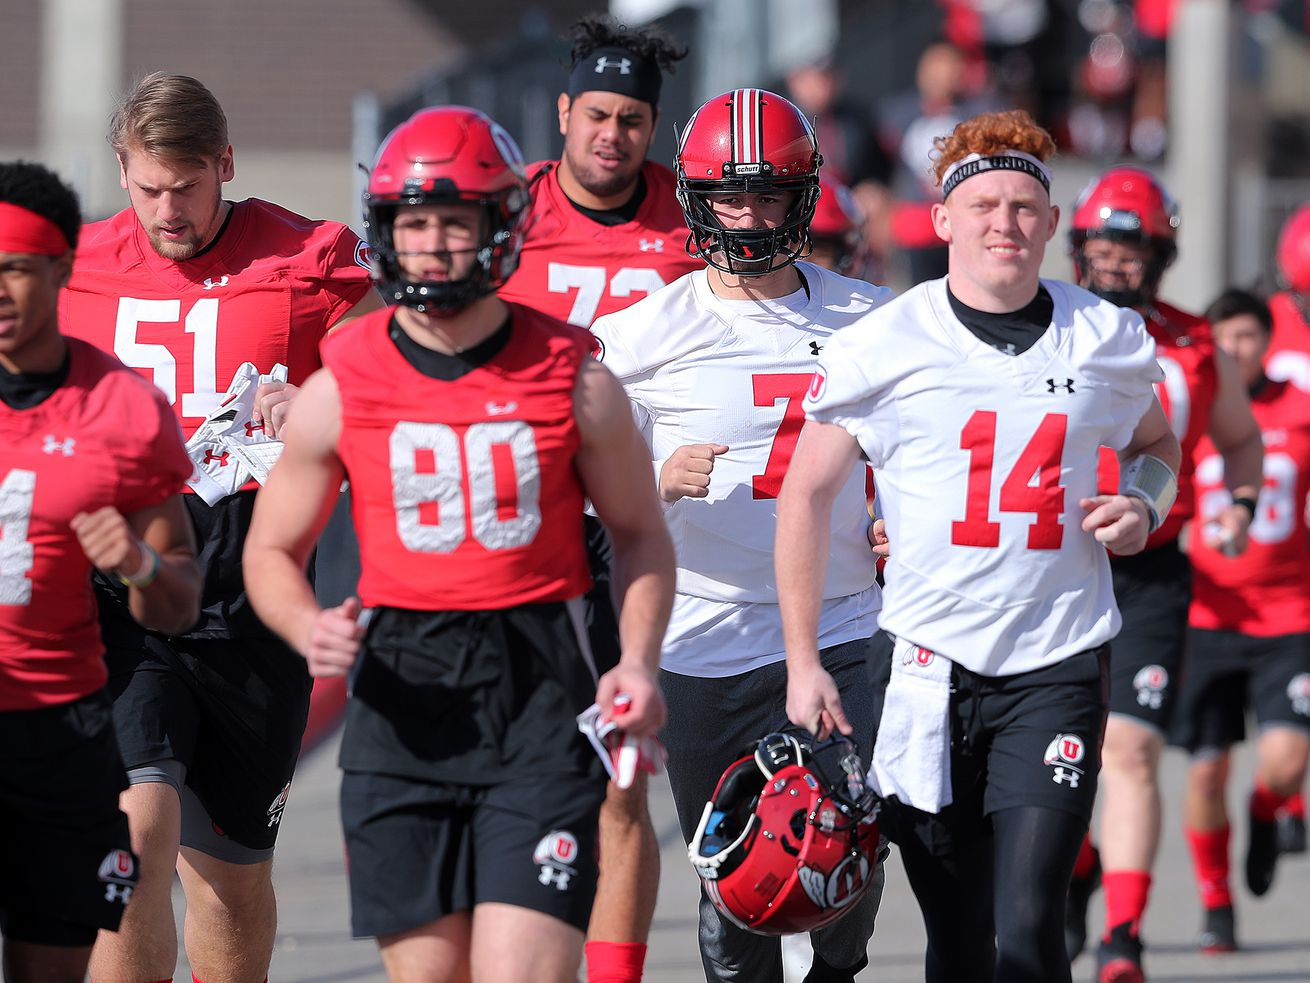 Ute football program cases of COVID-19 have been minimal, coach and players say